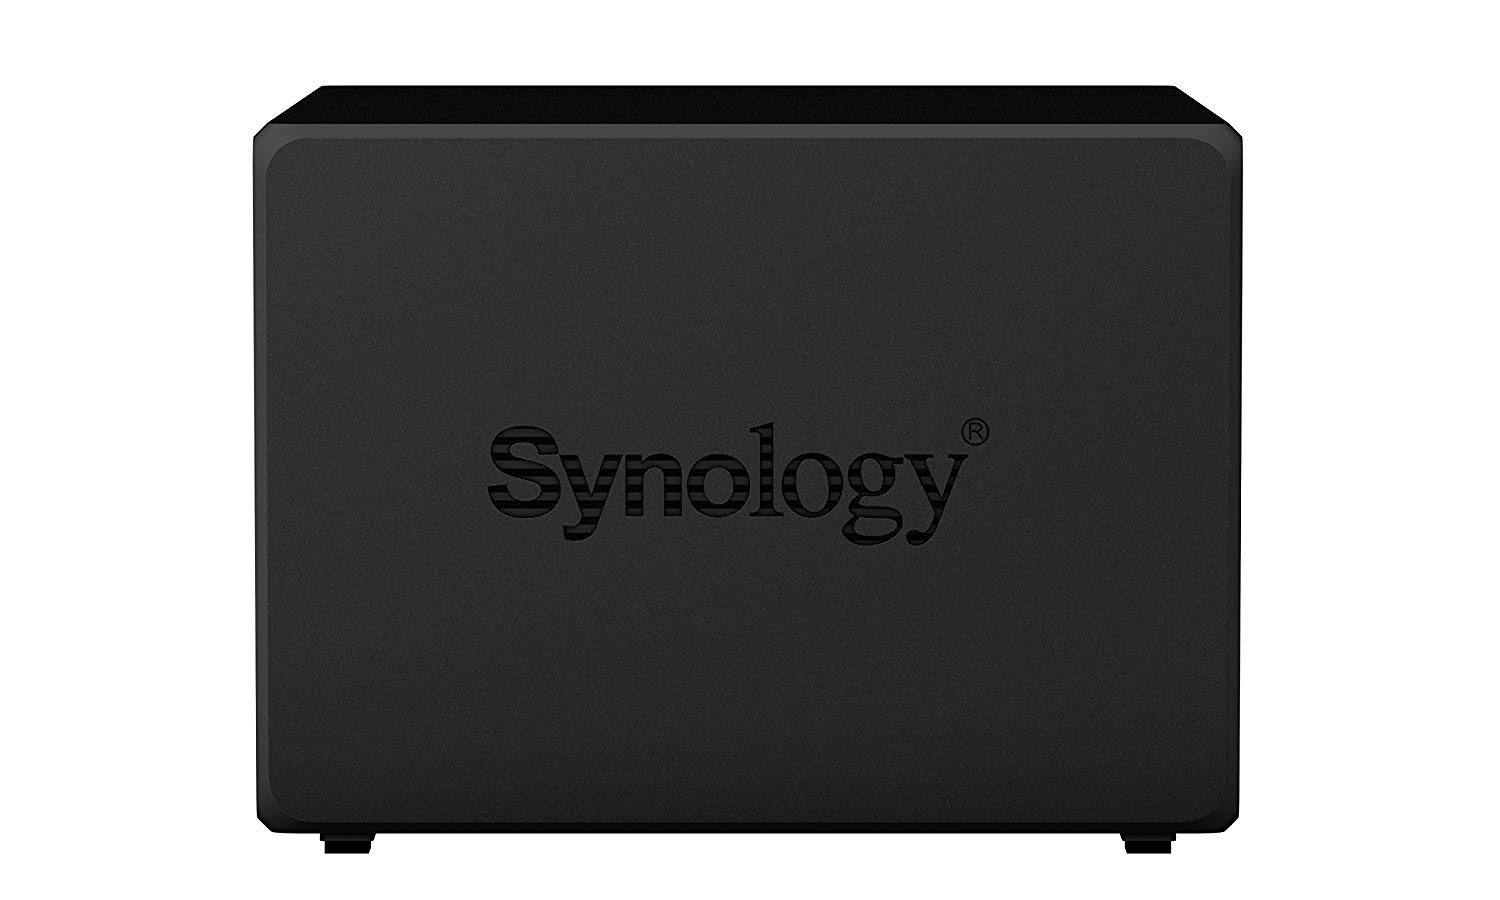 synology diskstation ds1019 internal components 1 image